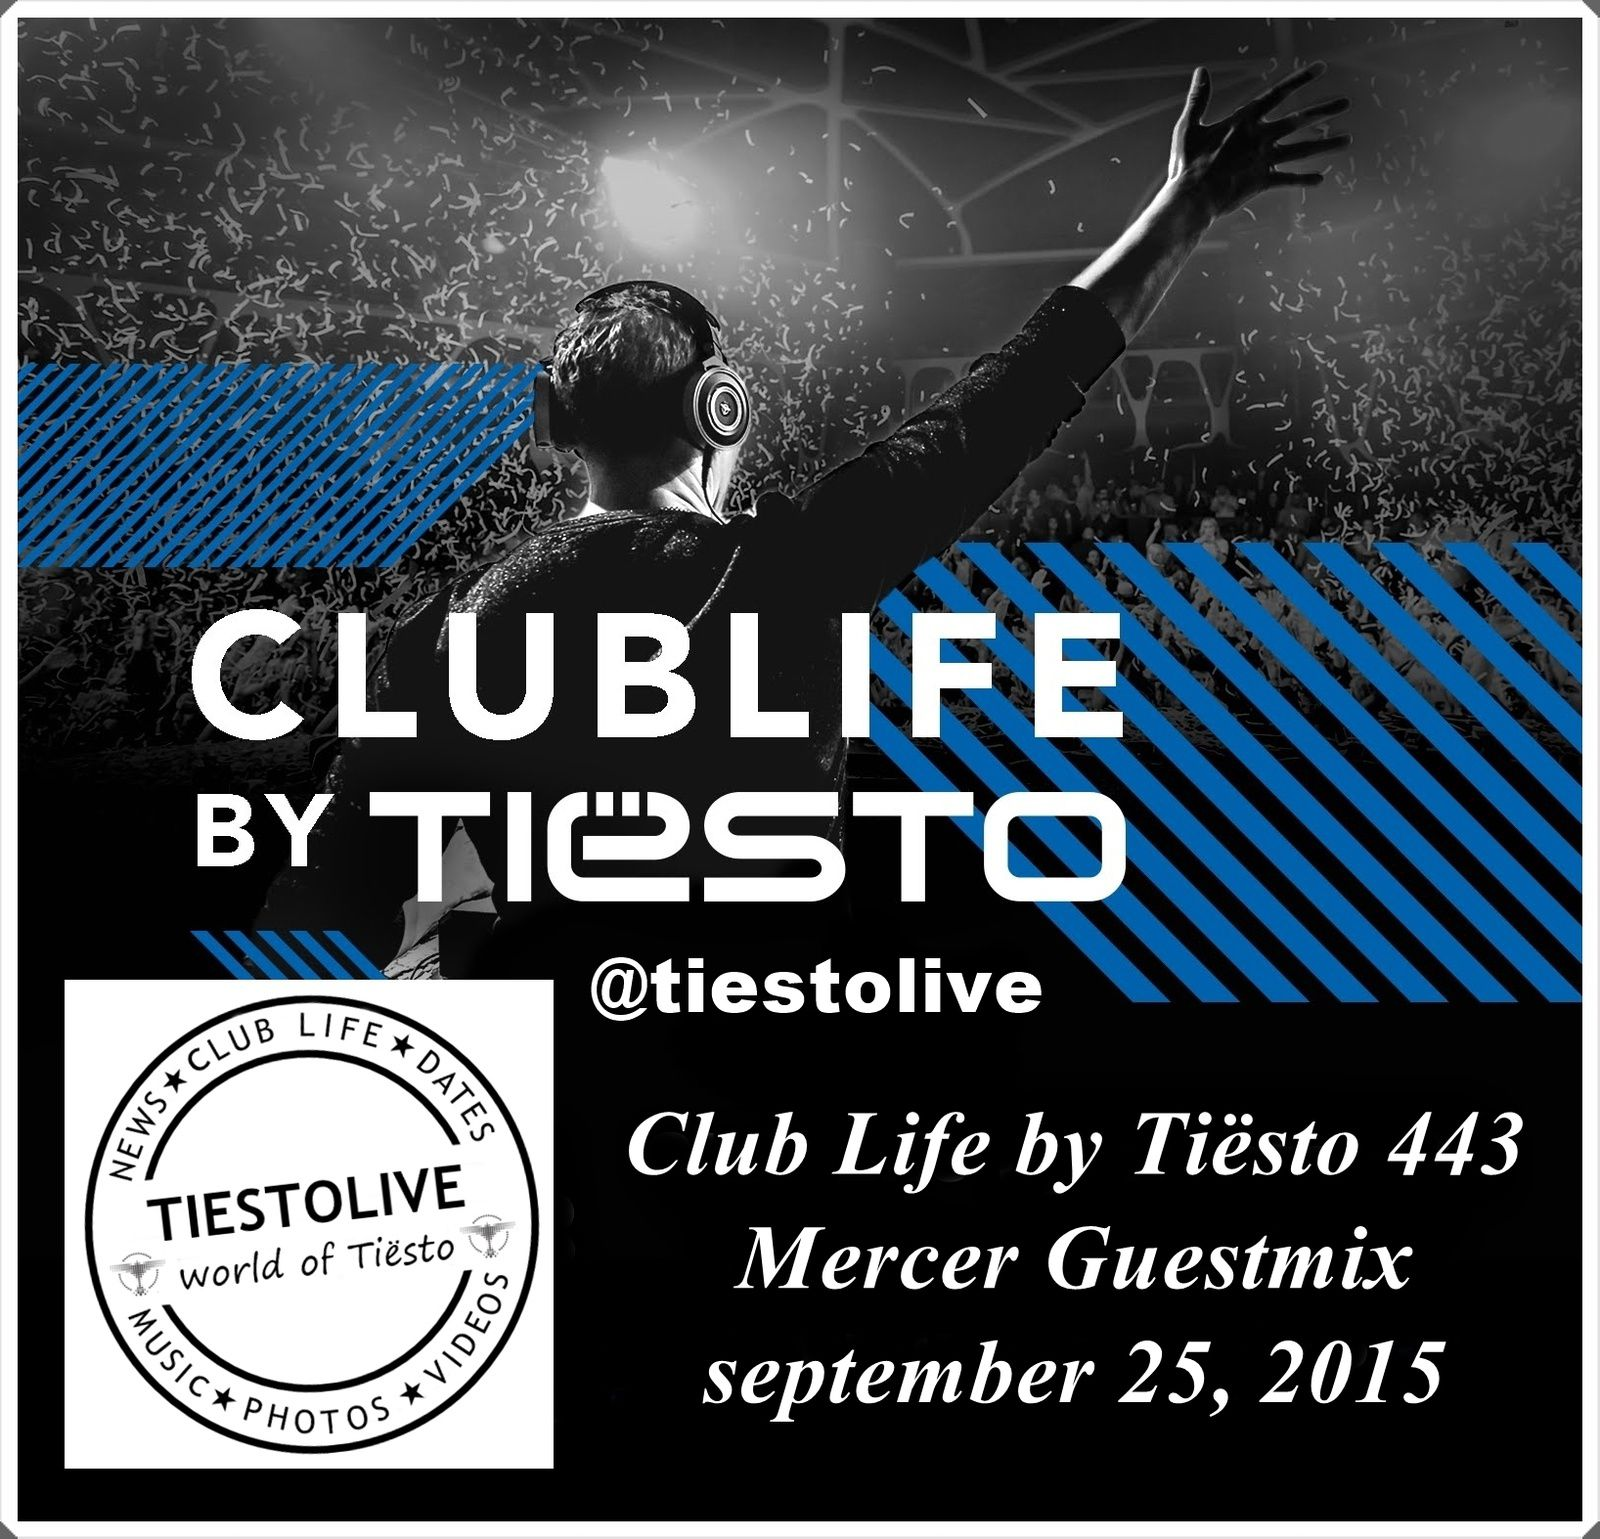 Club Life by Tiësto 443 - Mercer Guestmix - september 25, 2015